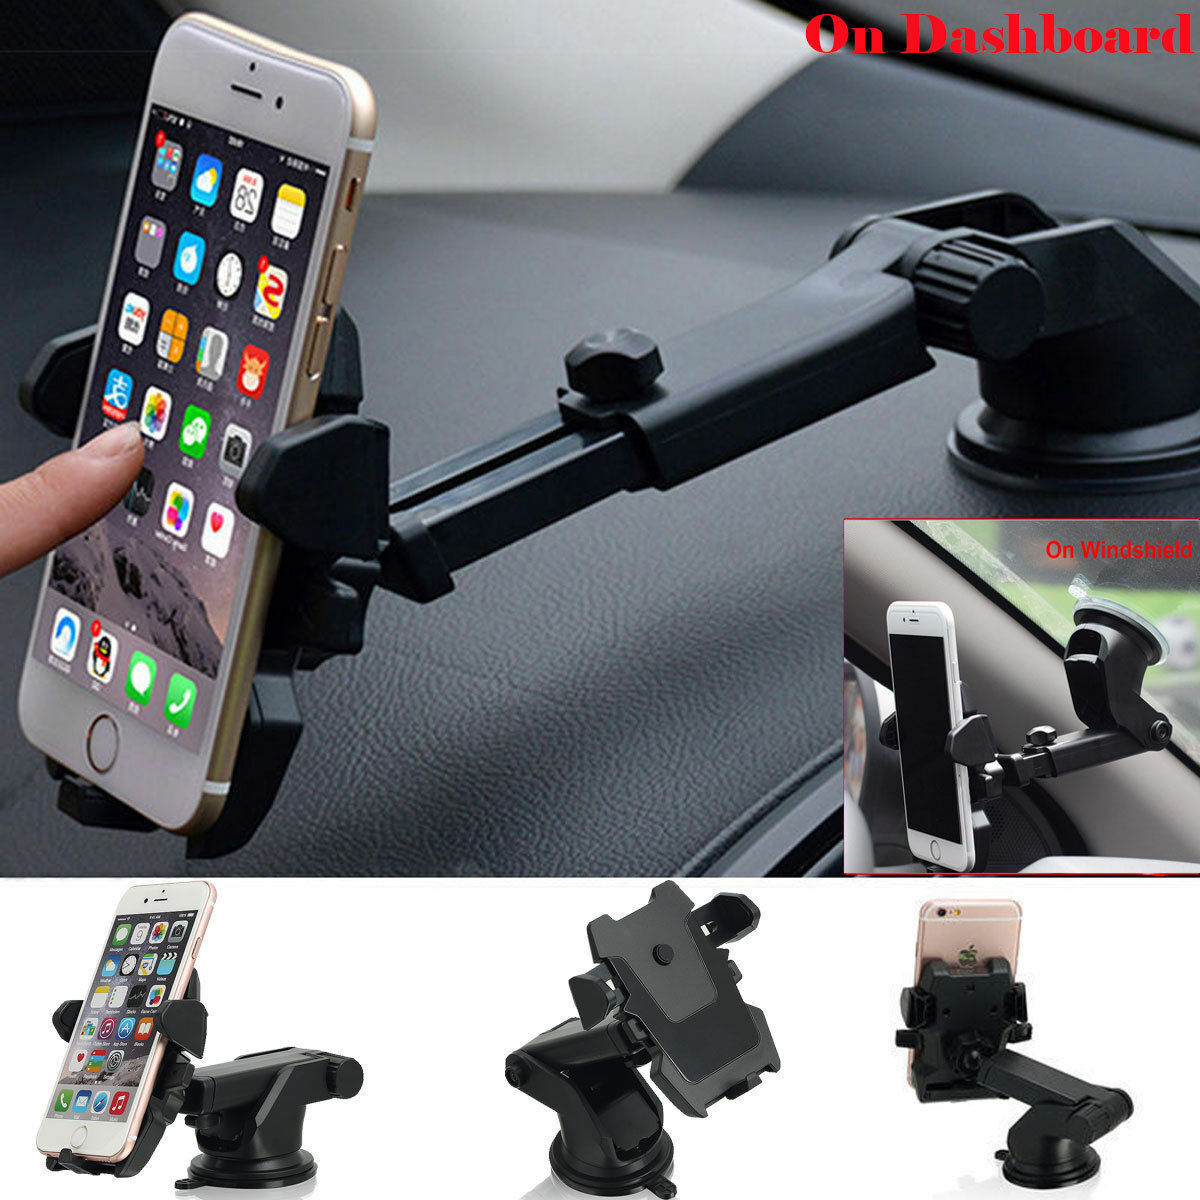 Universal Car Holder Windshield Dash Suction Cup Mount Stand for Cell Phone GPS Cell Phone Accessories